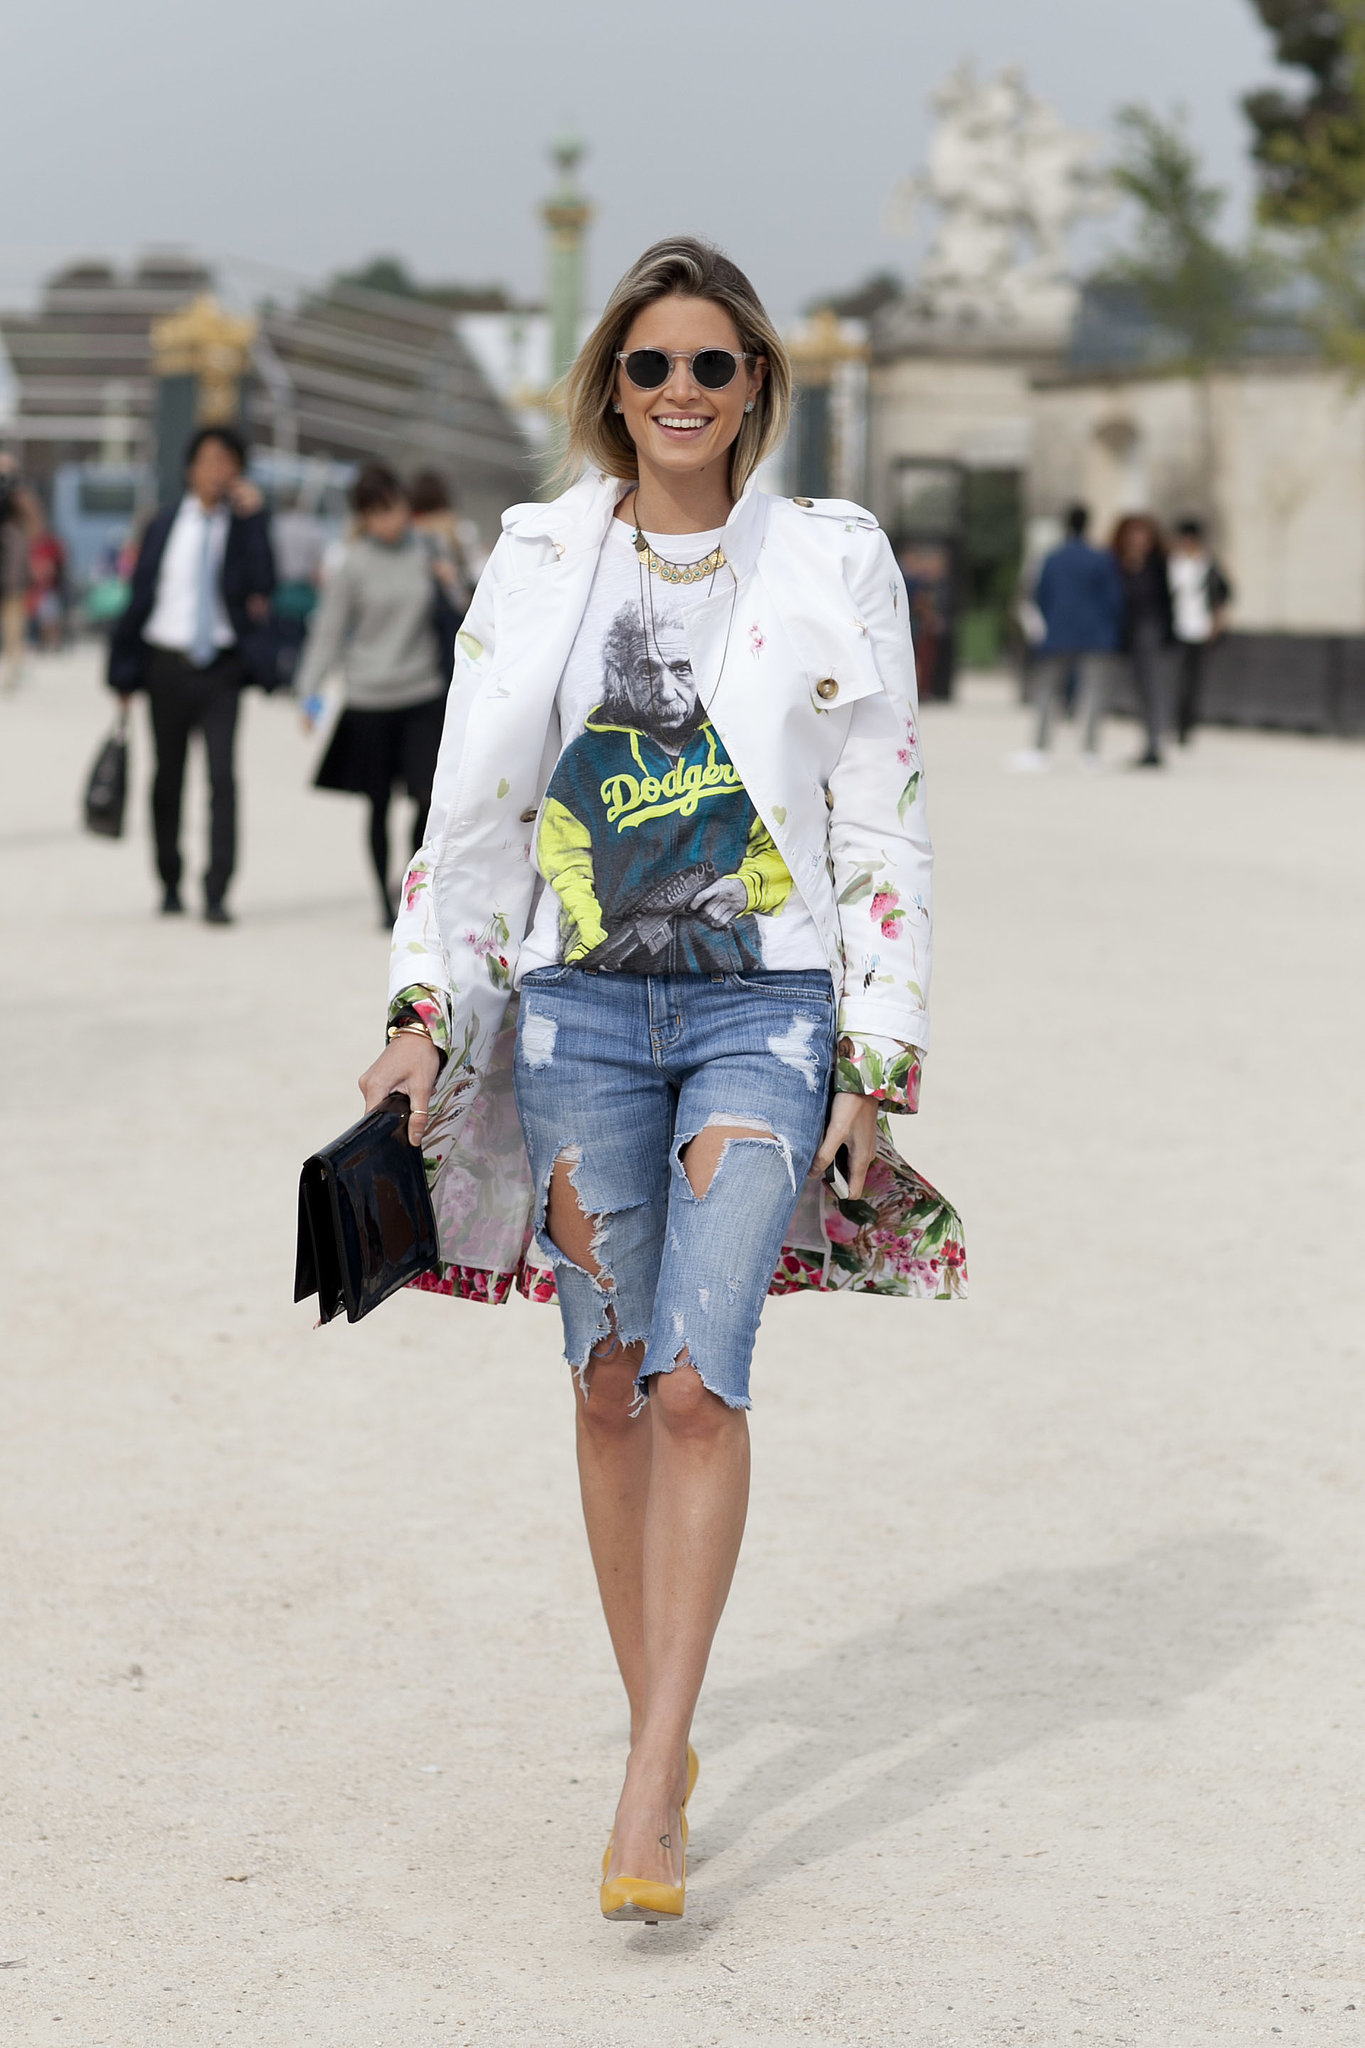 Cutoffs have their place at Fashion Week, alongside some killer add-ons.